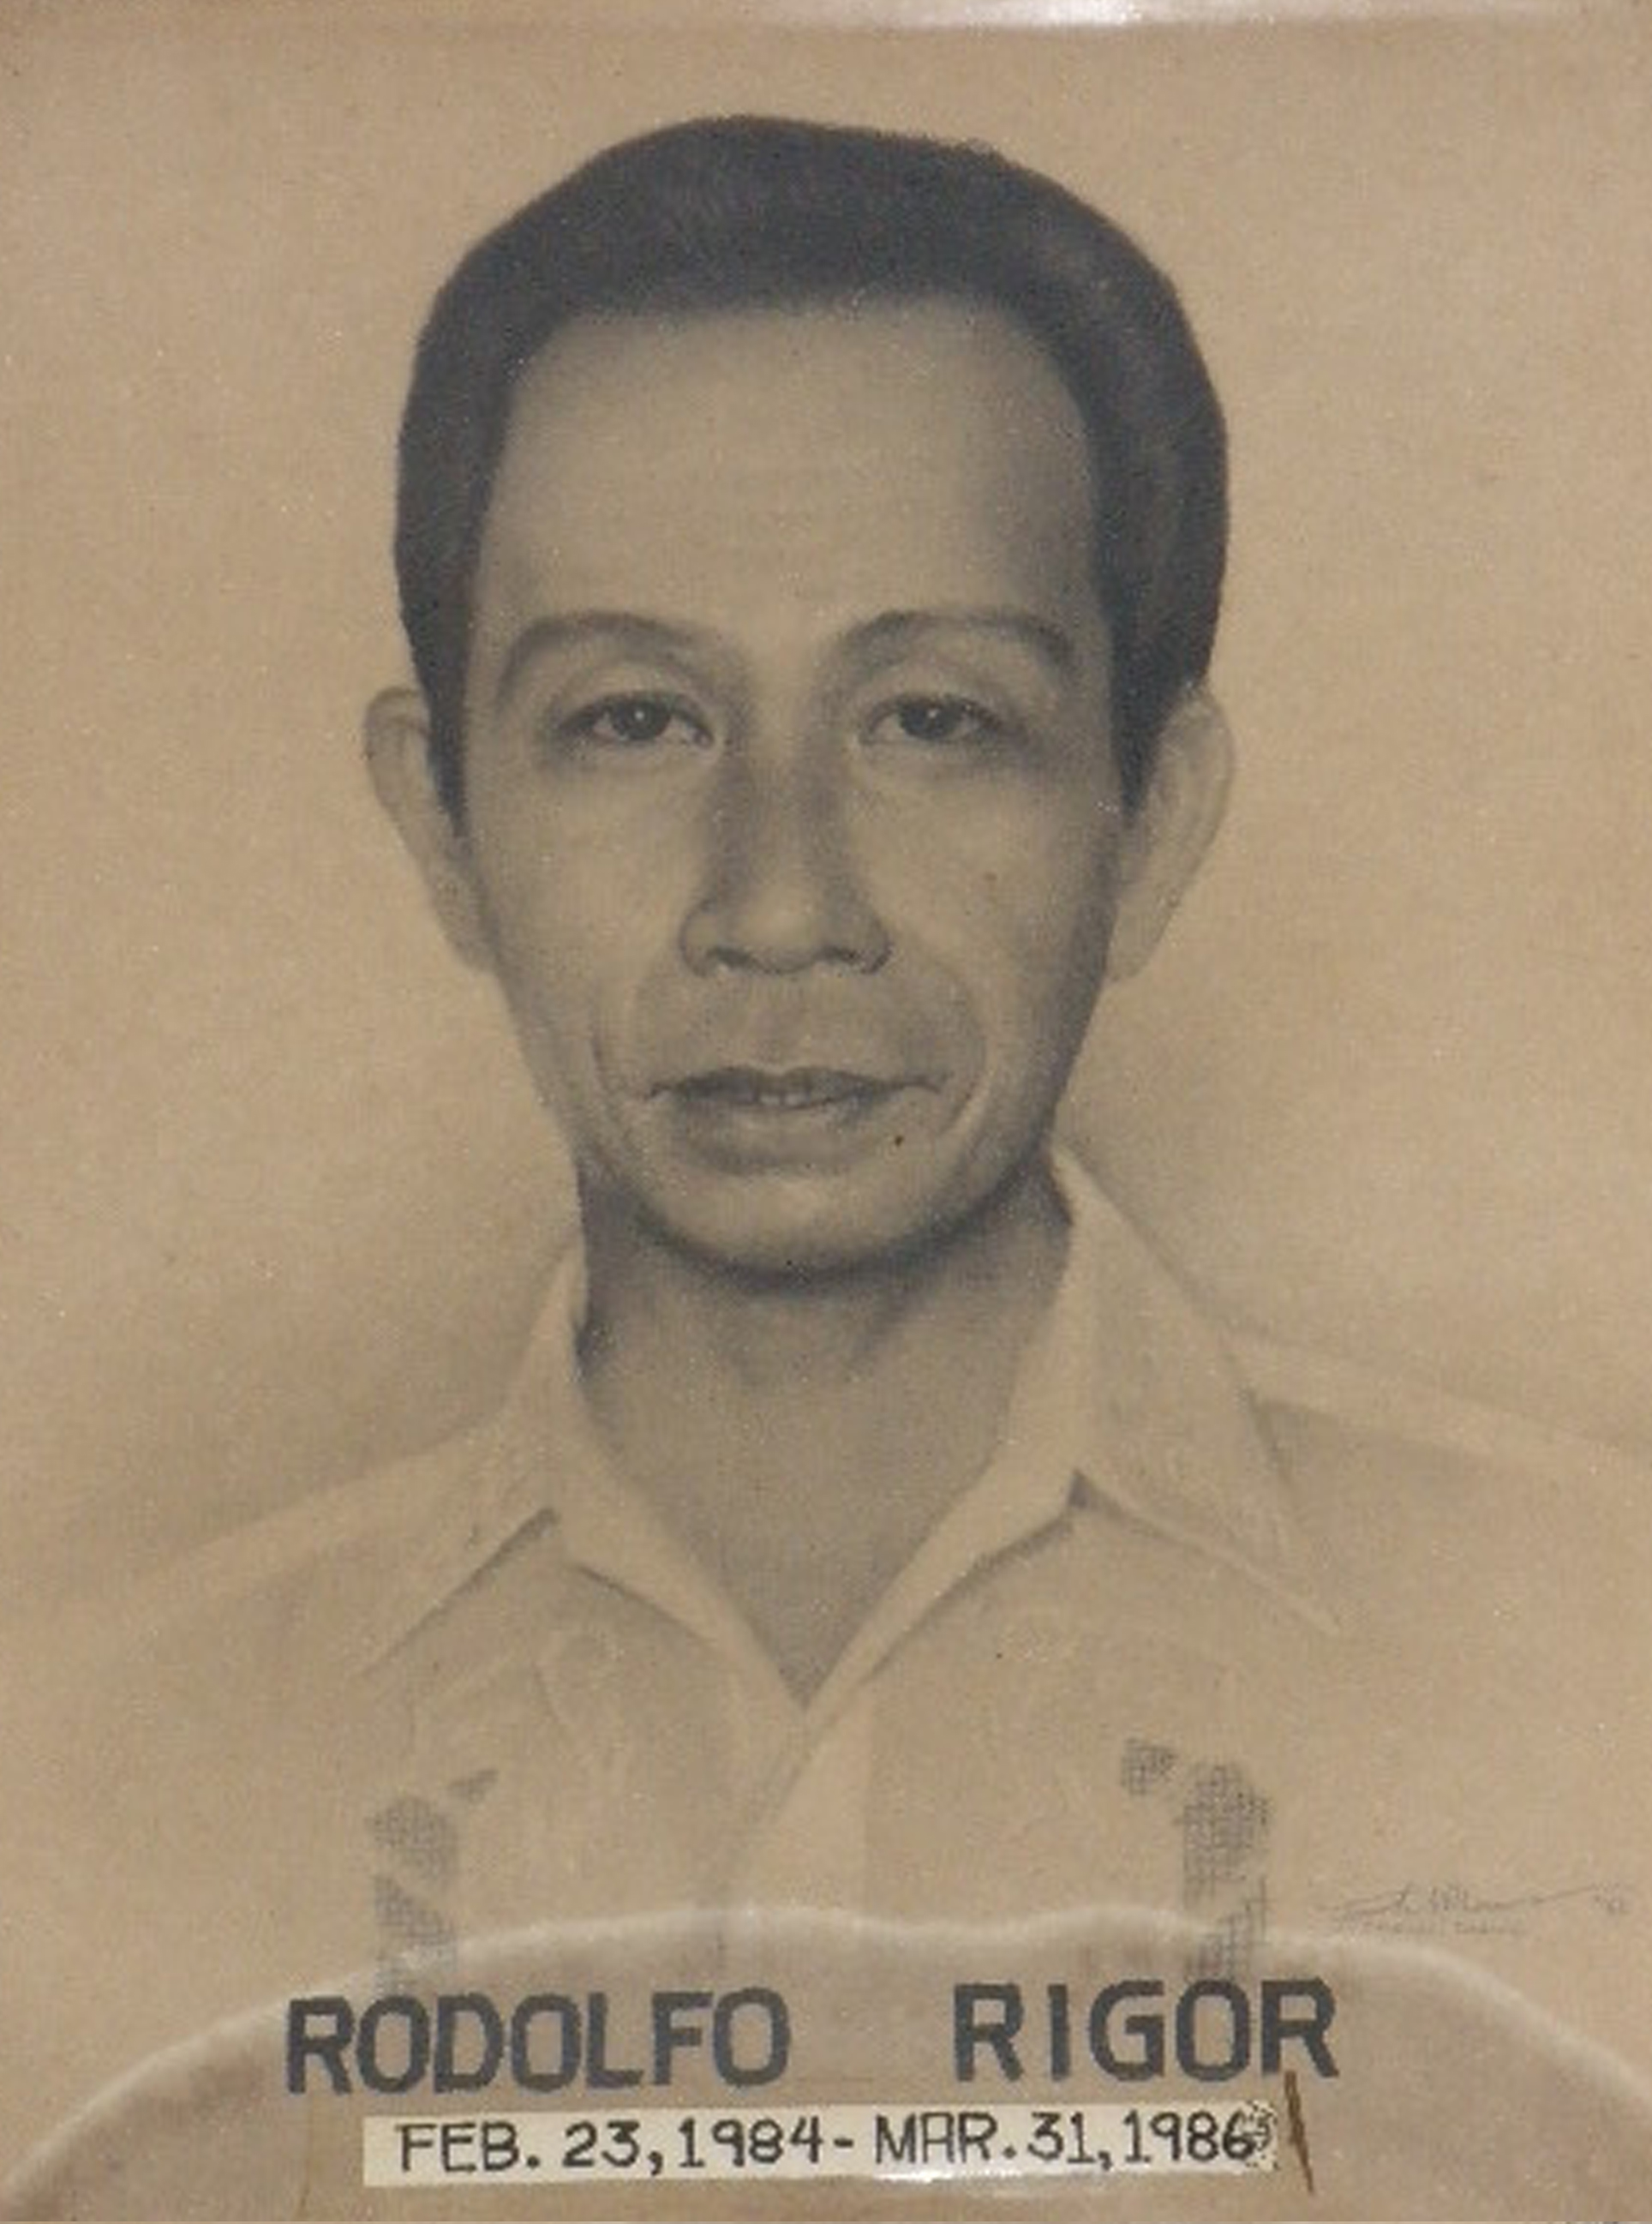 Mayor Rodolfo Rigor (1984-1986)